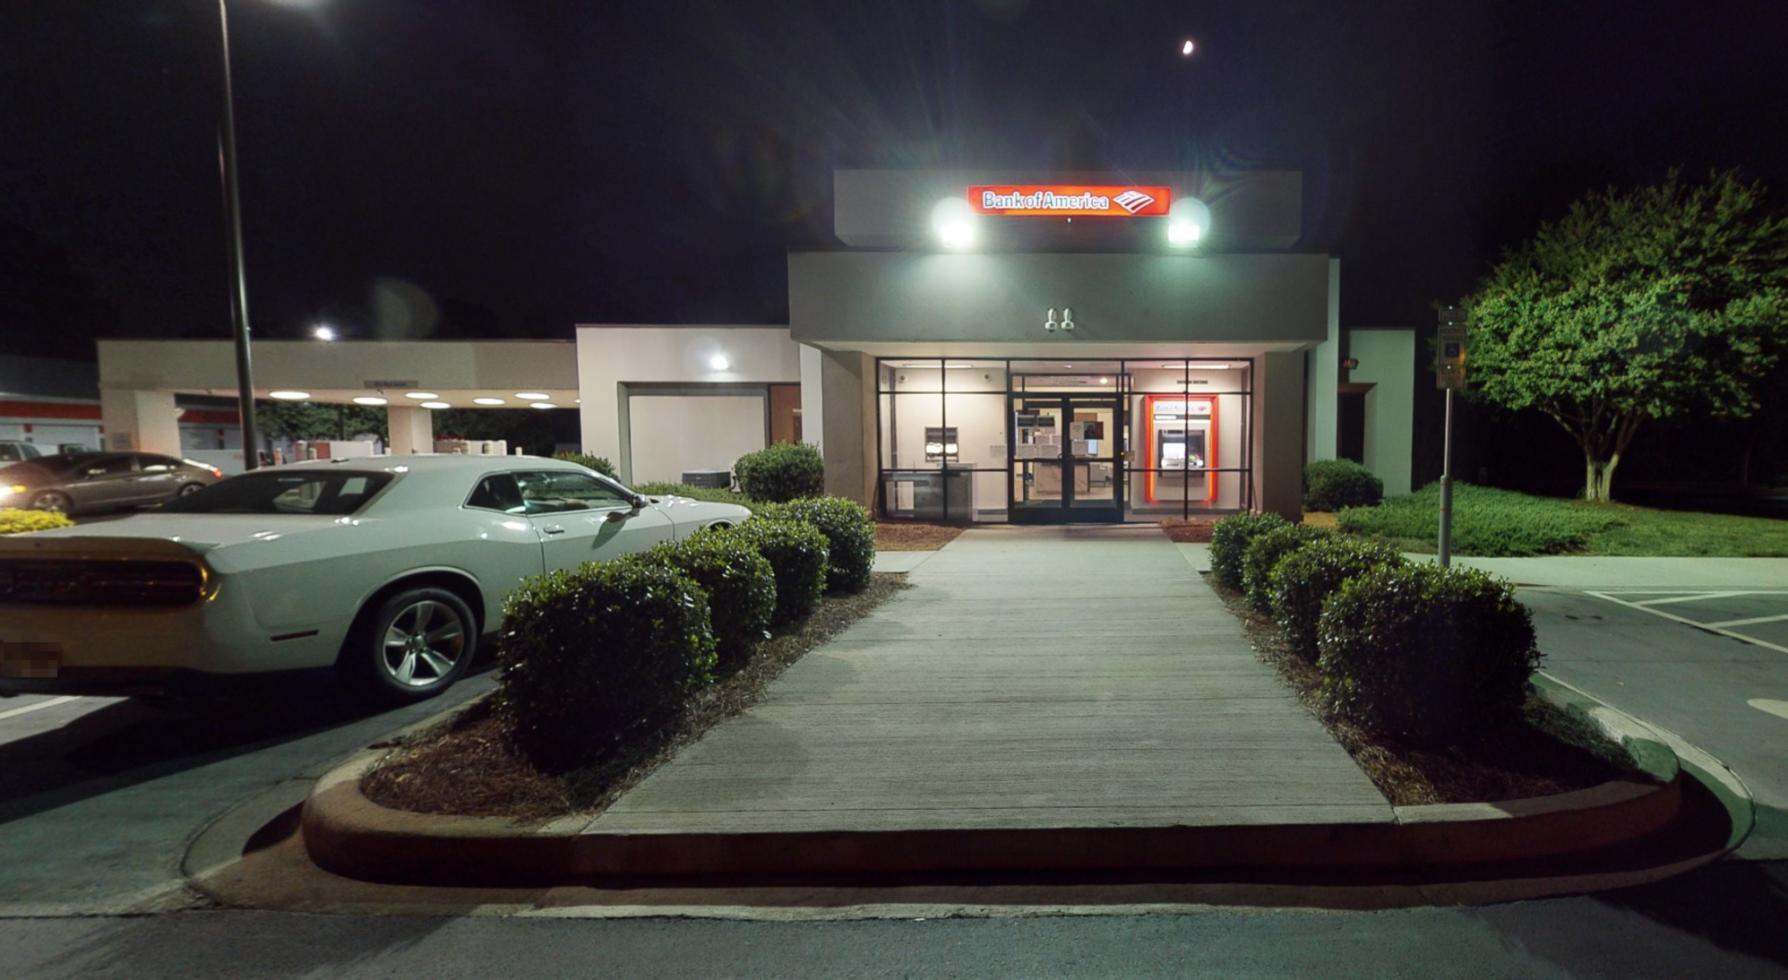 Bank of America financial center with drive-thru ATM | 2405 Freedom Dr, Charlotte, NC 28208